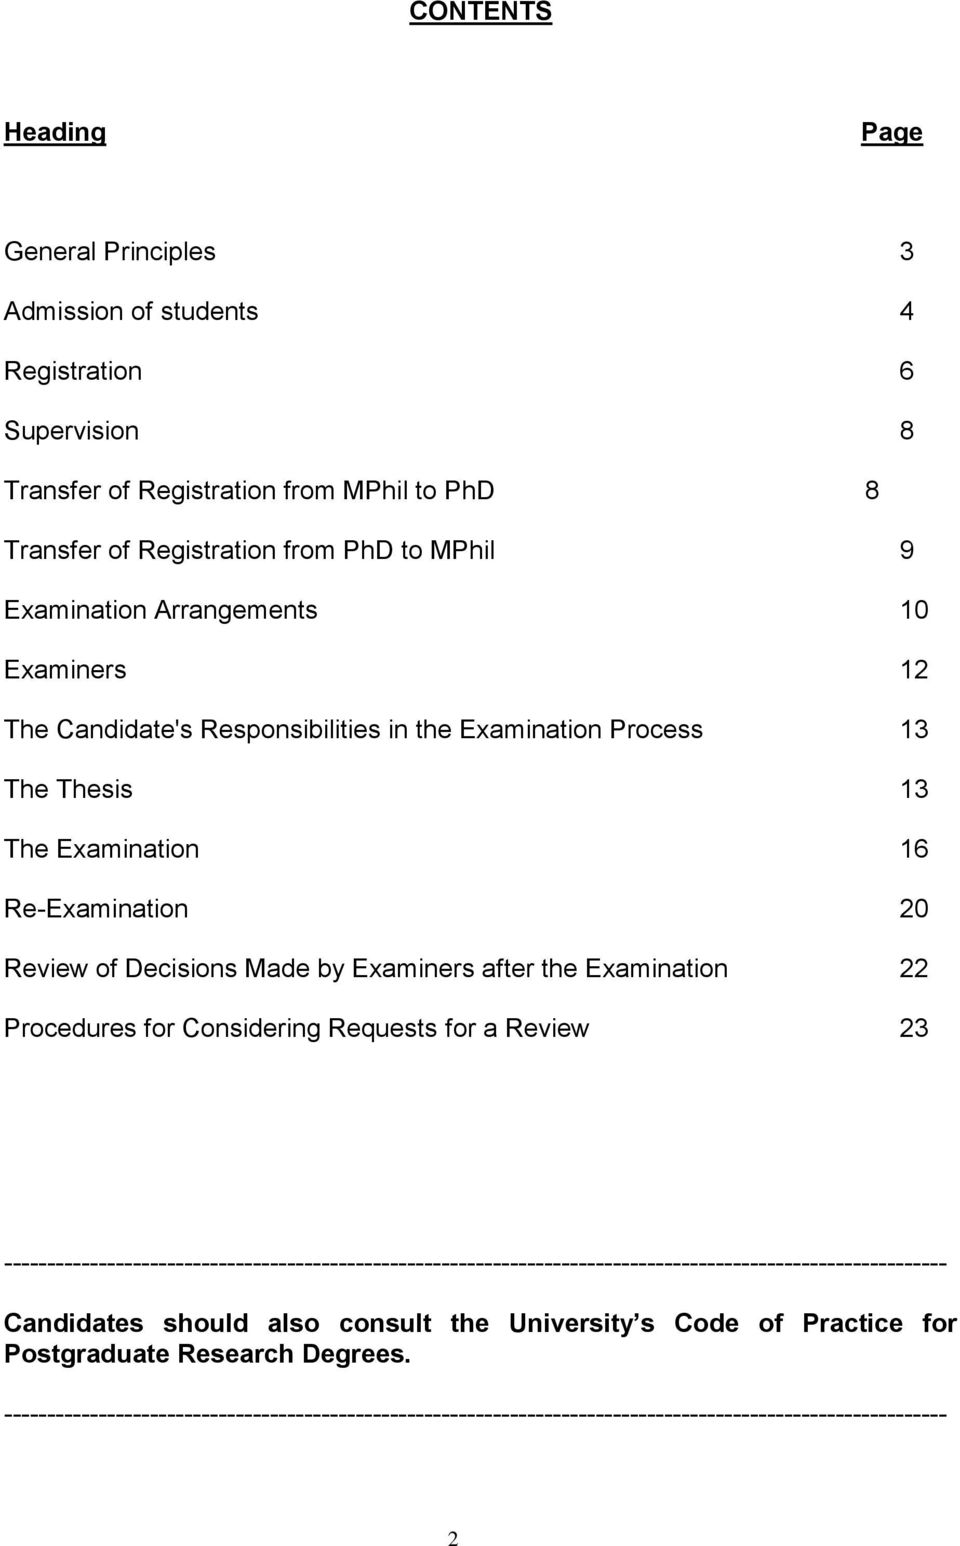 after the Examination 22 Procedures for Considering Requests for a Review 23 --------------------------------------------------------------------------------------------------------------